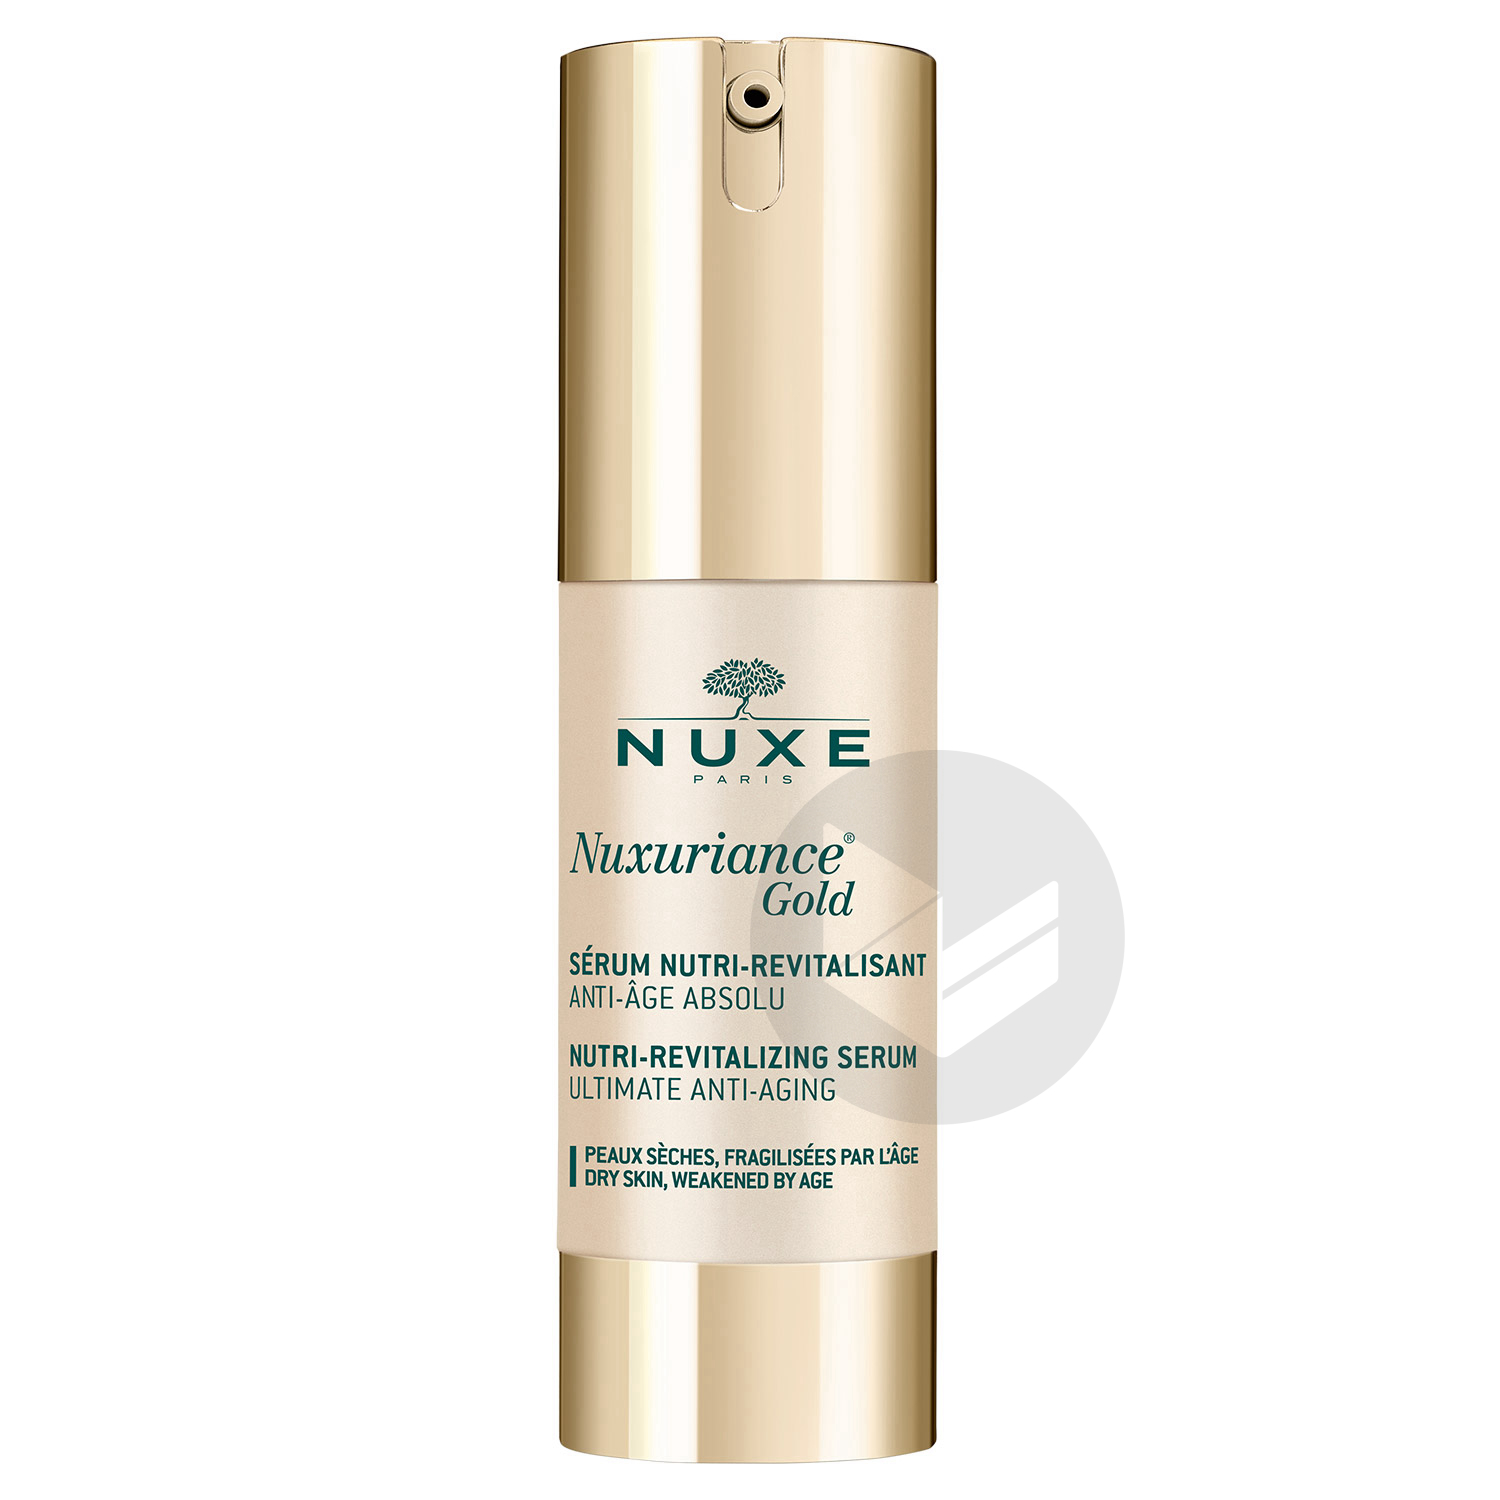 Serum Nutri Revitalisant